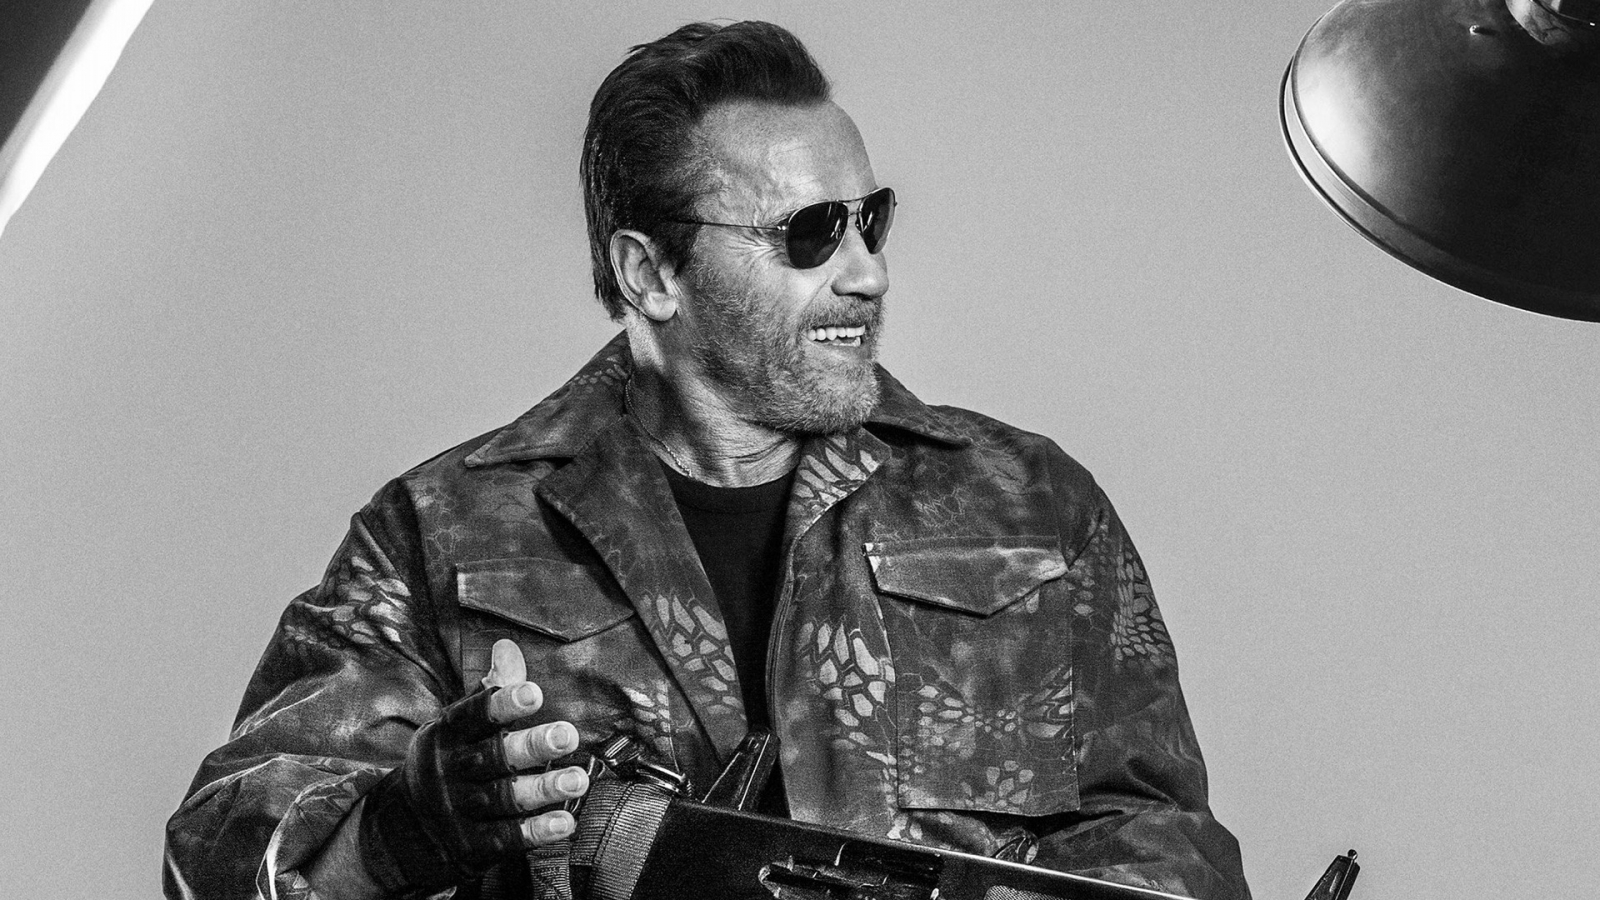 Arnold Schwarzenegger The Expendables 3 for 1600 x 900 HDTV resolution